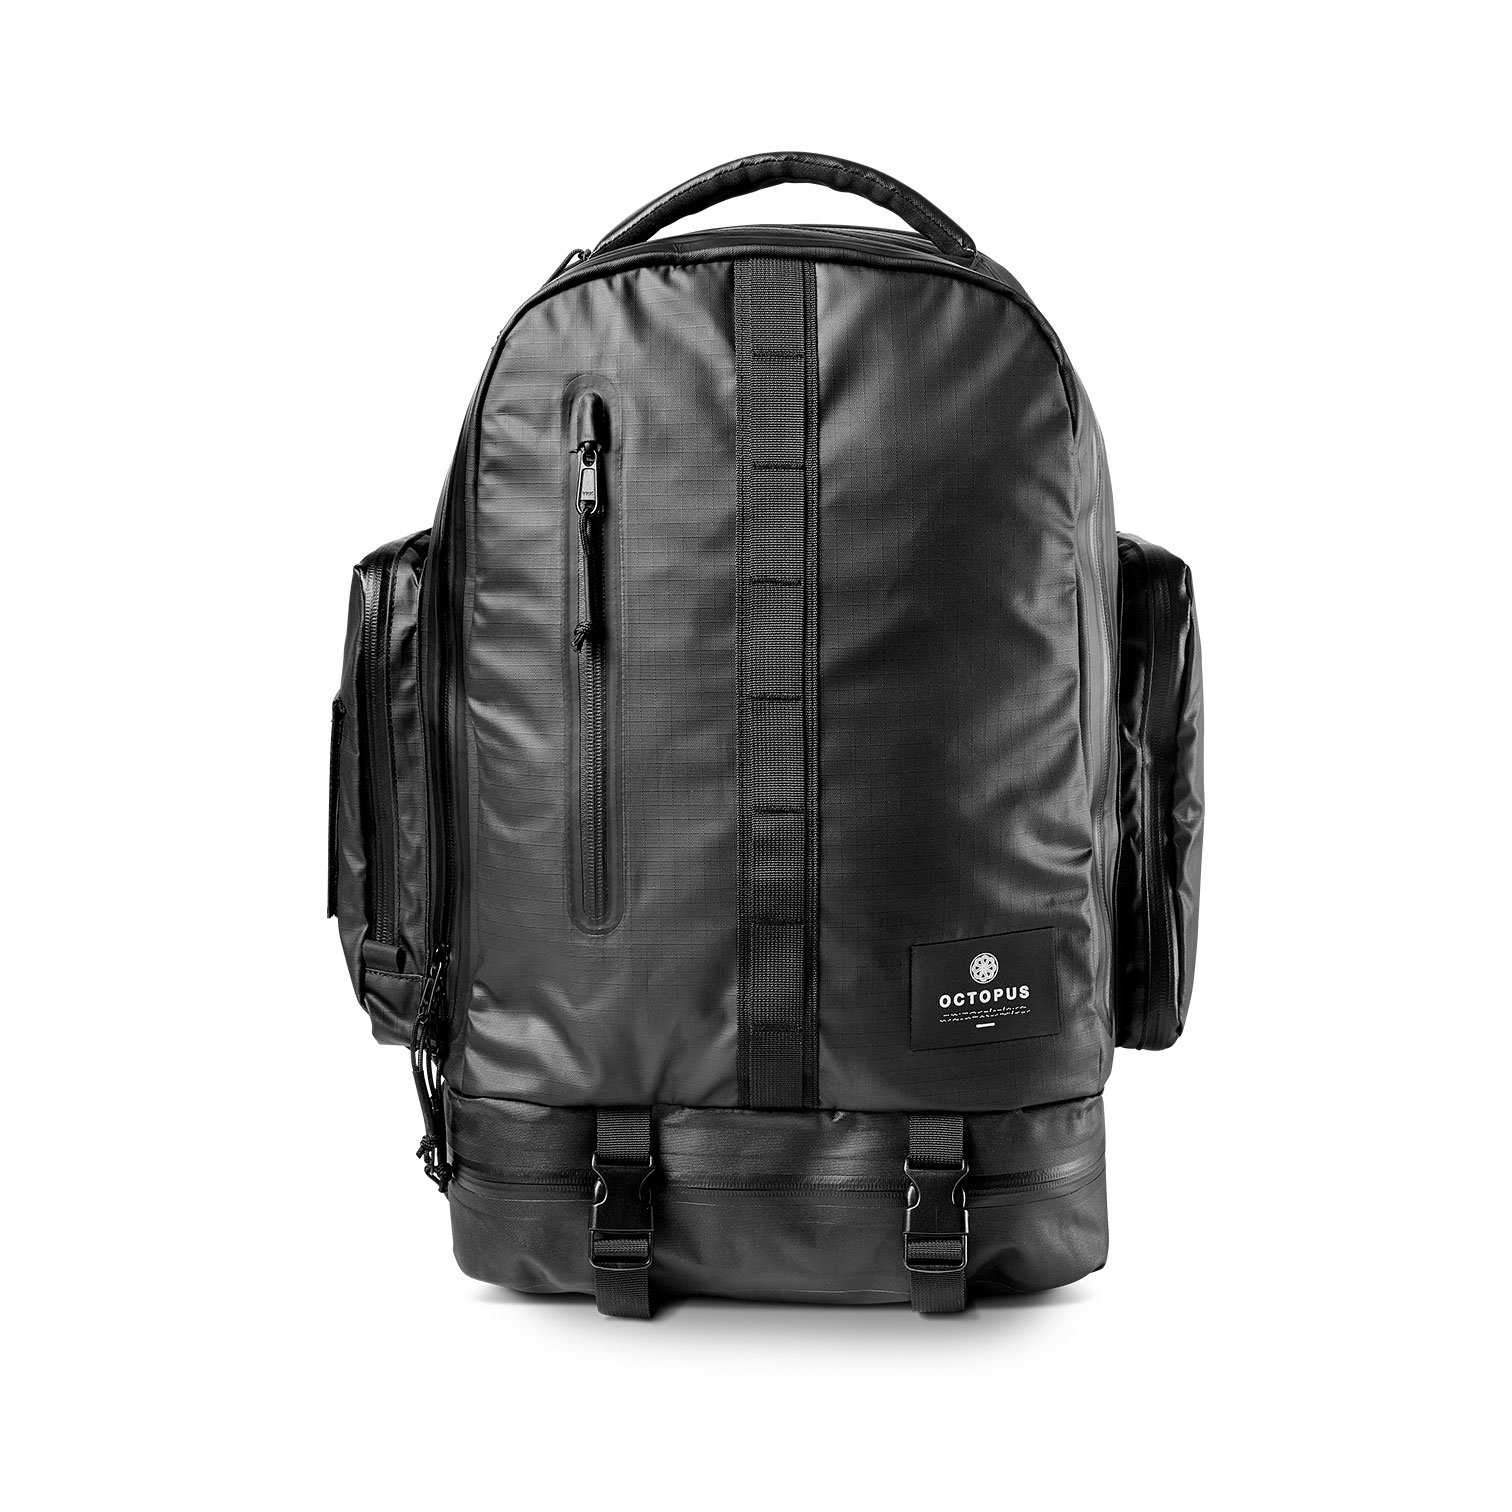 VLAP 34 L - VERY LARGE ADVENTURE PACK